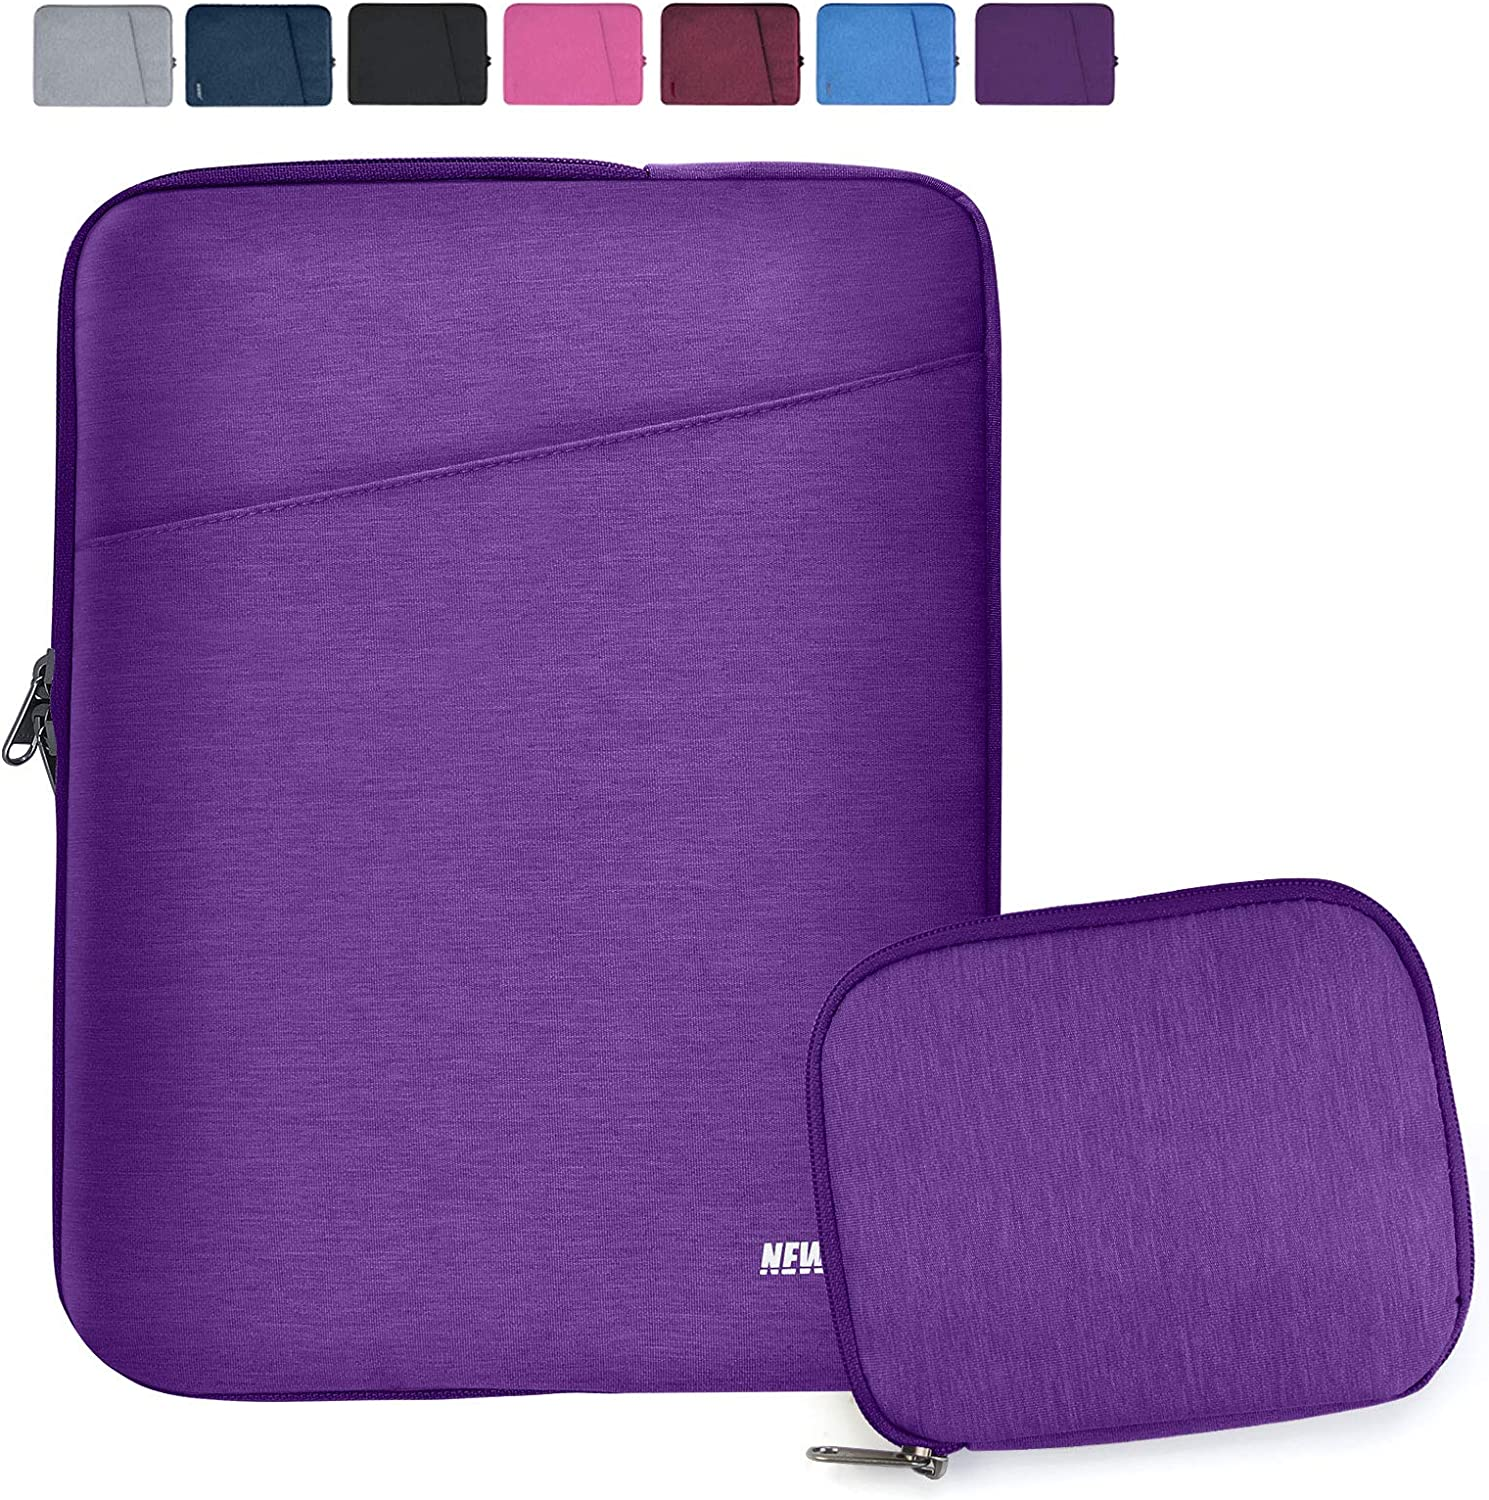 """NEWHEY Laptop Sleeve 13.3-14 Inch Computer Bag Multi-Color Choices Case, Water-Resistant Notebook Pocket Tablet Briefcase Carrying Bag with A Case,Compatible with 13""""MacBook Pro and Macbook Air,Purple"""